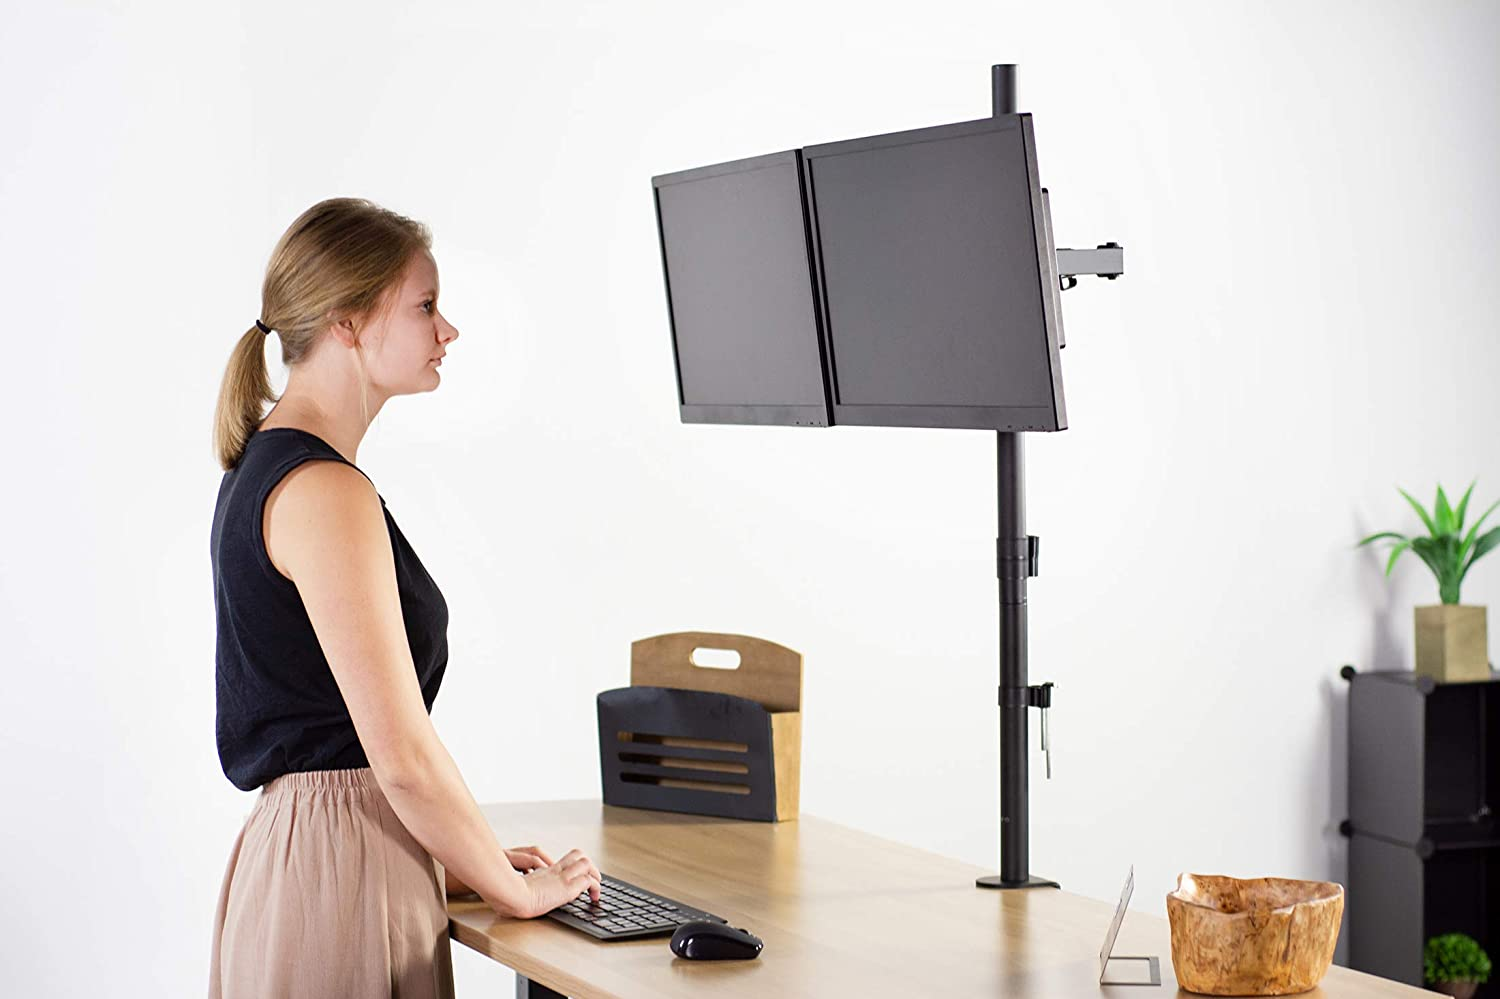 VIVO Dual Monitor Stand Up Desk Mount Extra Tall 39 inch Pole, Fully Adjustable Stand for up to 27 inch Screens, STAND-V012